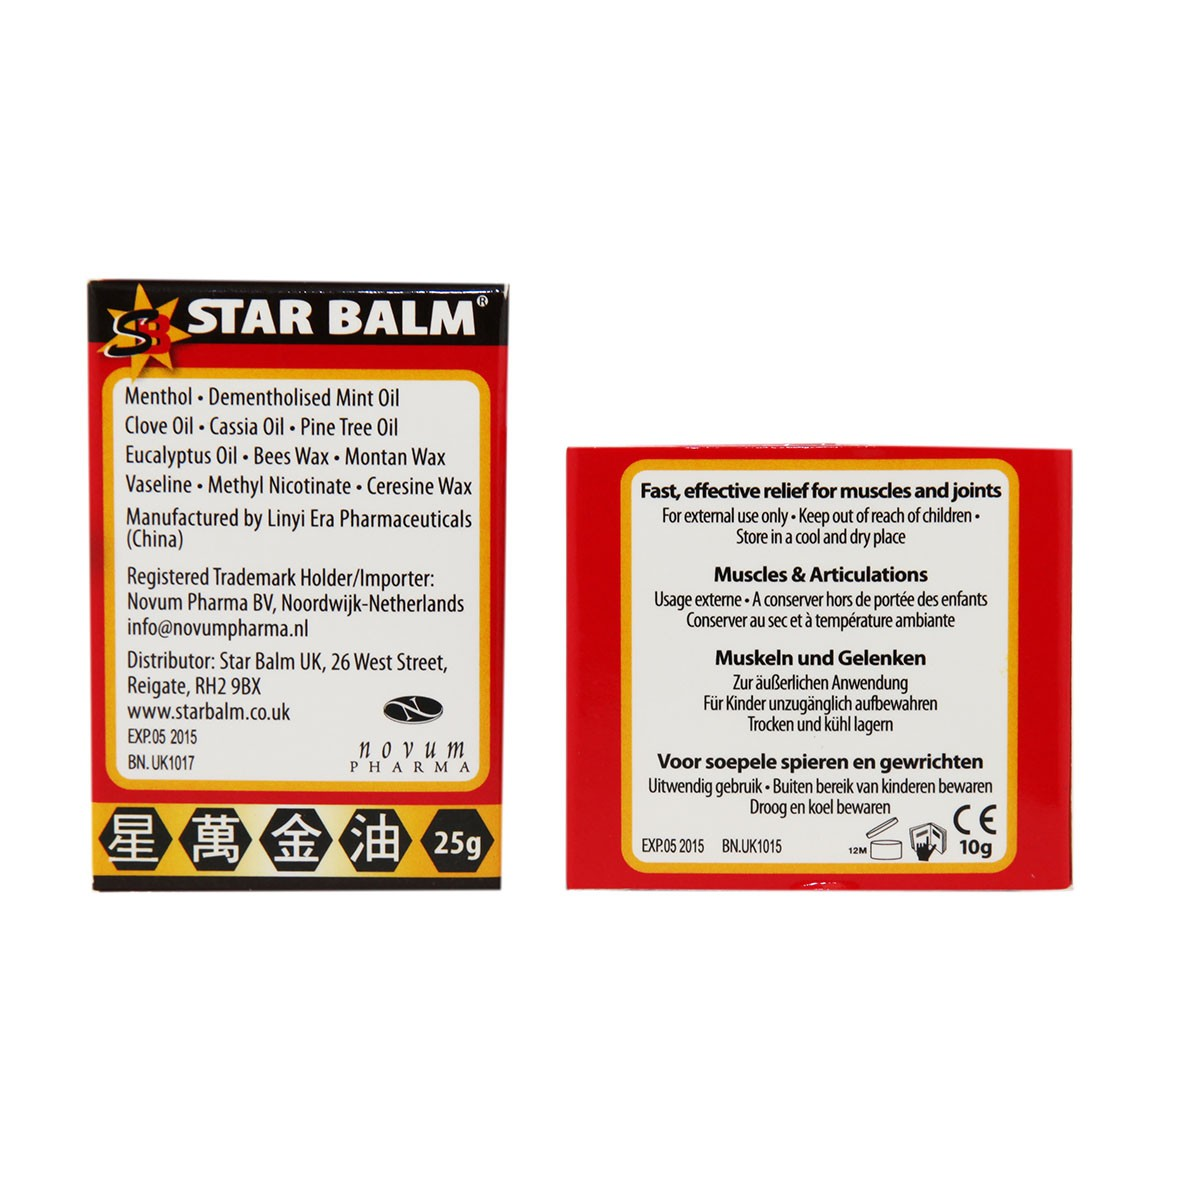 Star Balm Muscles and Joints Red Balm